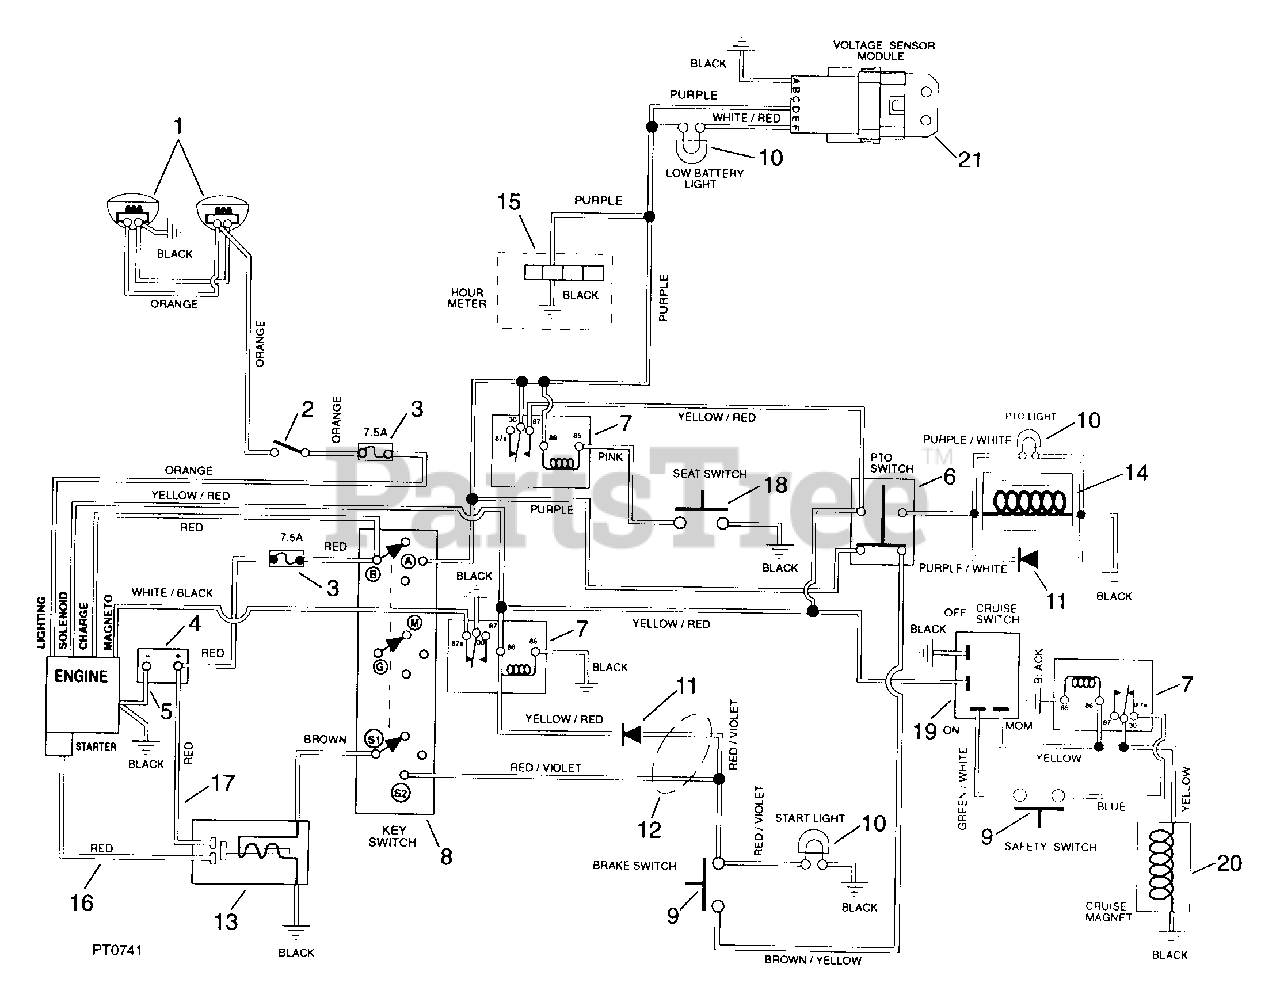 Ariens 936306 1440 H Ariens Sierra 40 Yard Tractor 14hp Briggs Stratton Hydro Sn 000301 Above Wiring Diagram 4 Parts Lookup With Diagrams Partstree